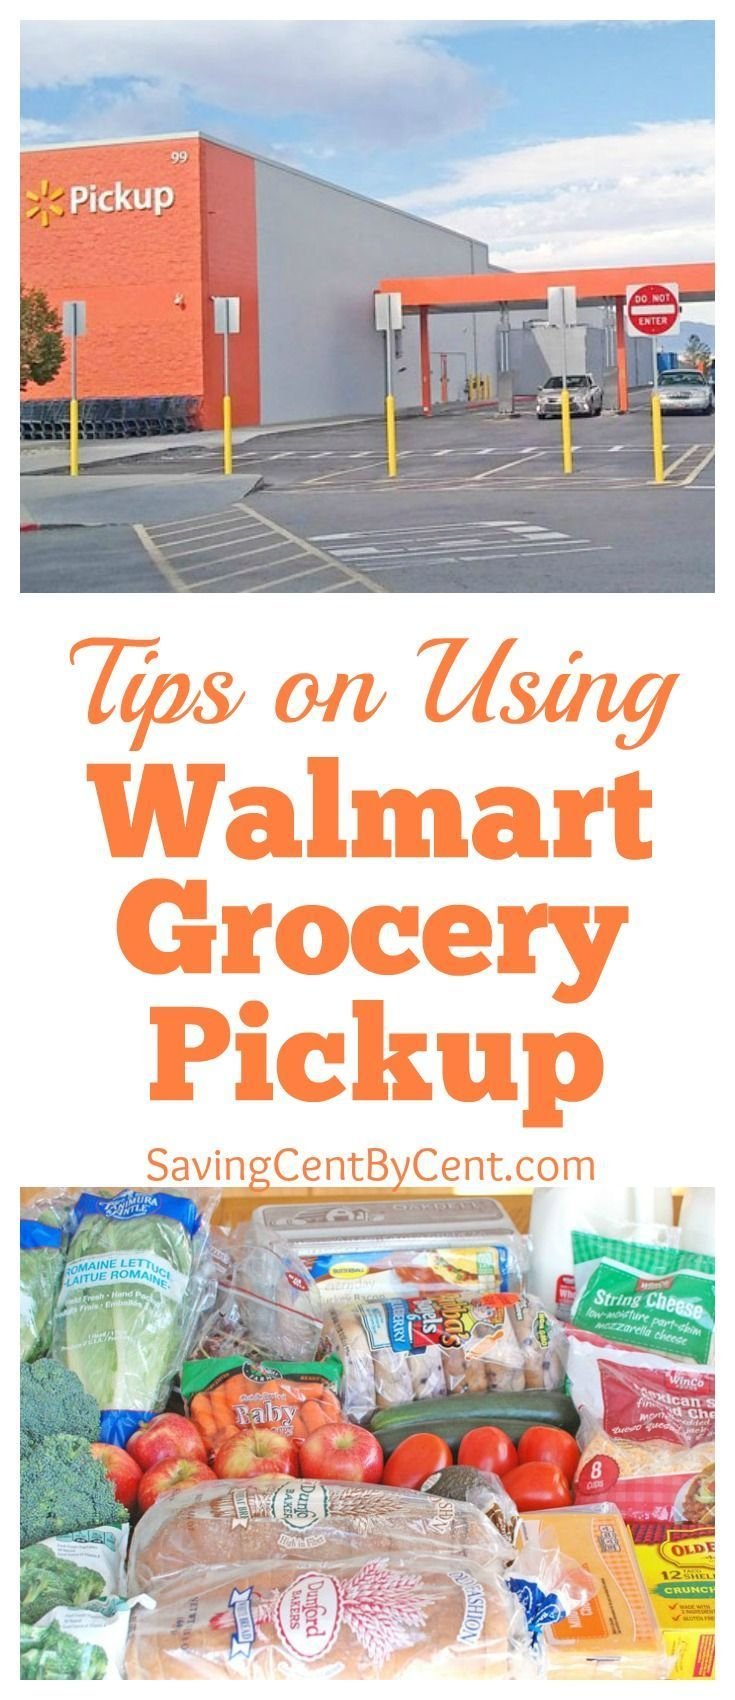 Tips on Using Walmart Grocery Pickup + 10 Off Your First